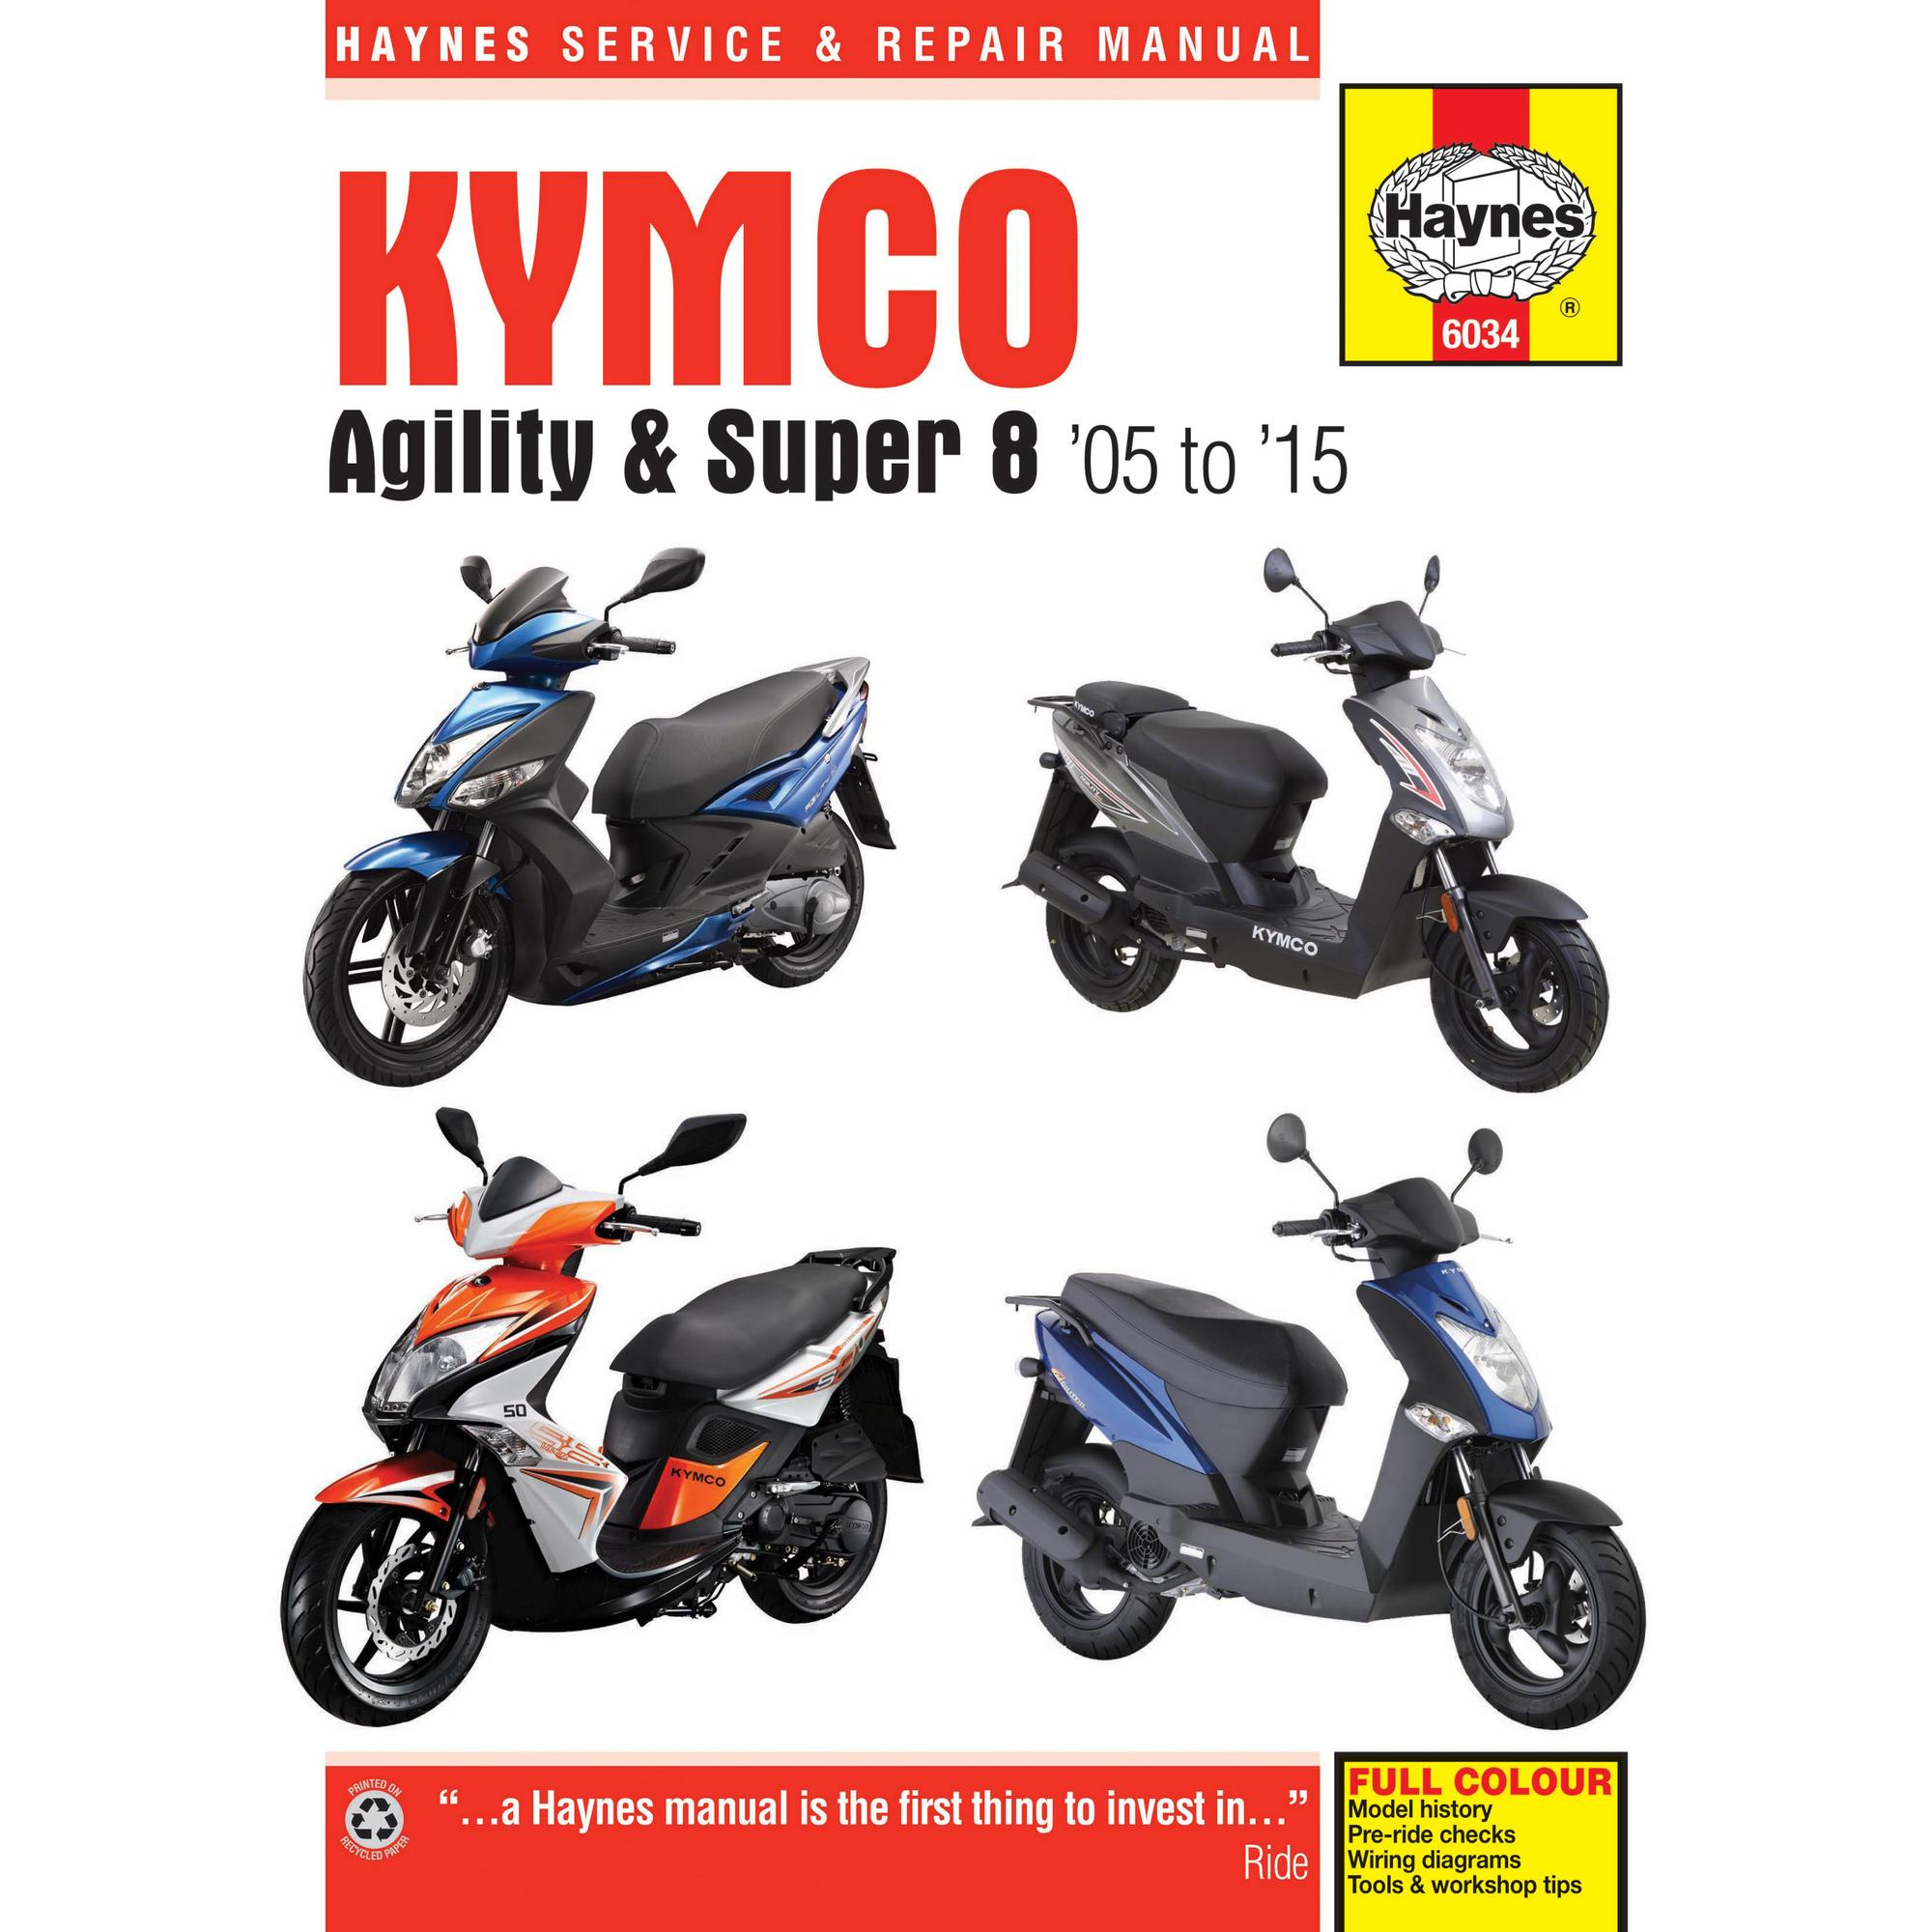 Haynes Owners Workshop Repair Manual Kymco Agility Super 8 Scooter 49cc Wiring Diagram Electric Scooters For Sale 2005 2015